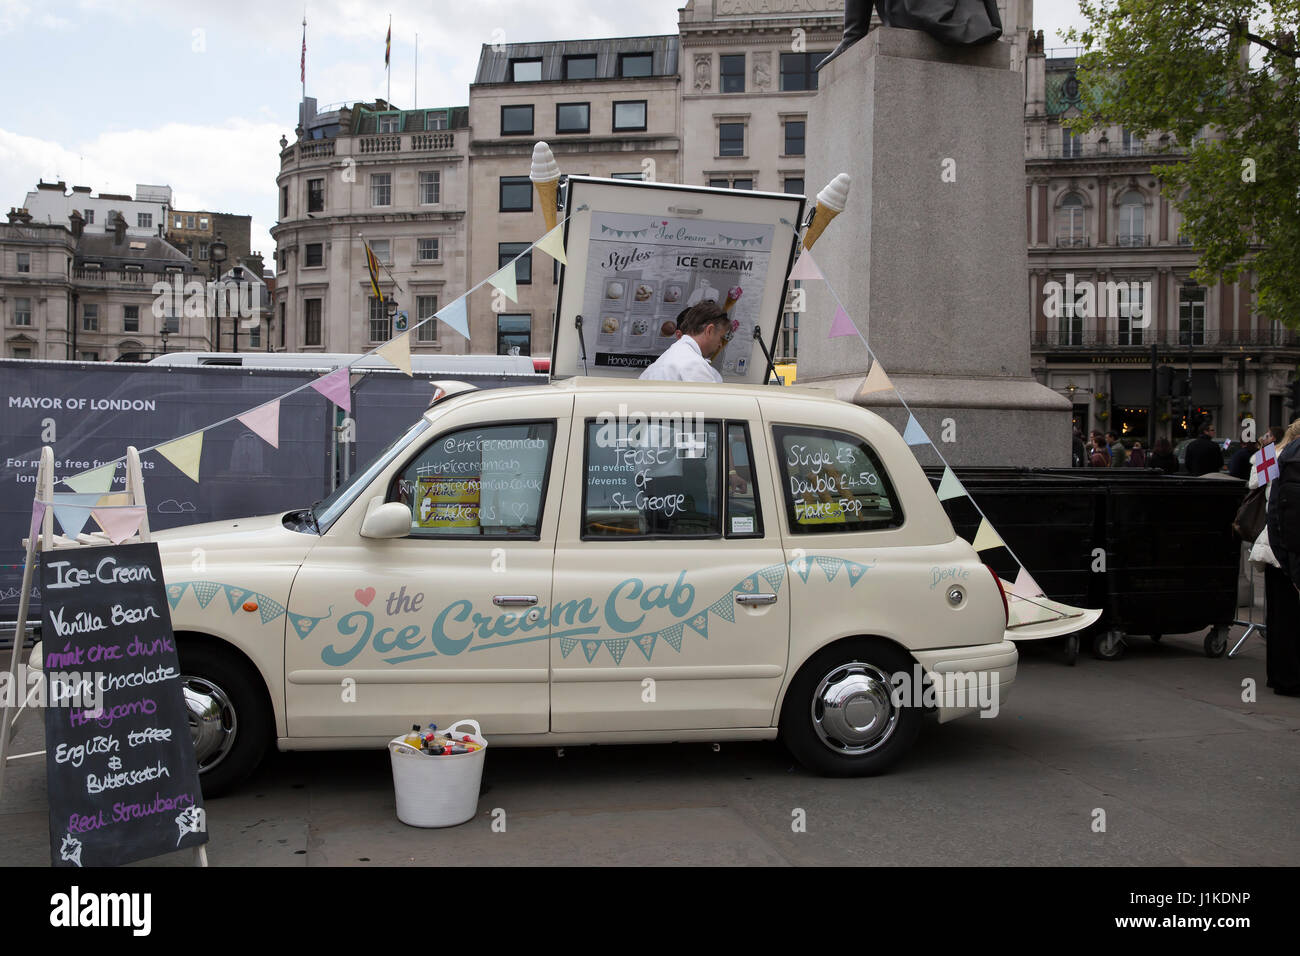 Trafalgar Square,UK,22nd April 2017,The ice cream cab at The Annual Feast of St George celebrations which took place - Stock Image